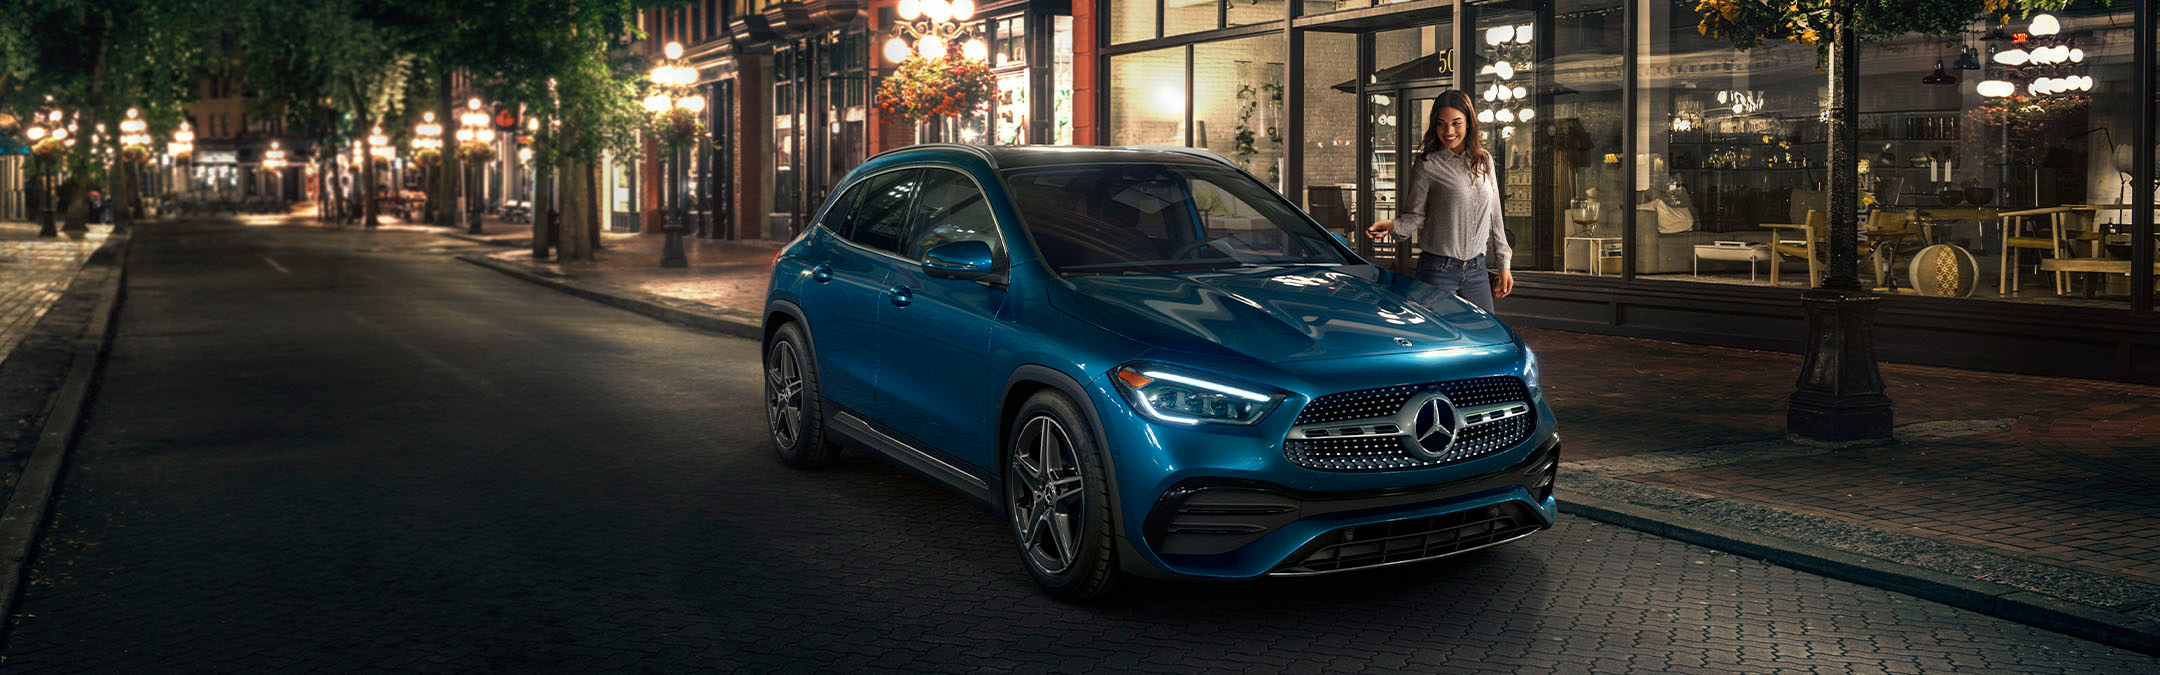 2021 Mercedes-Benz GLA poarked on road with woman locking doors